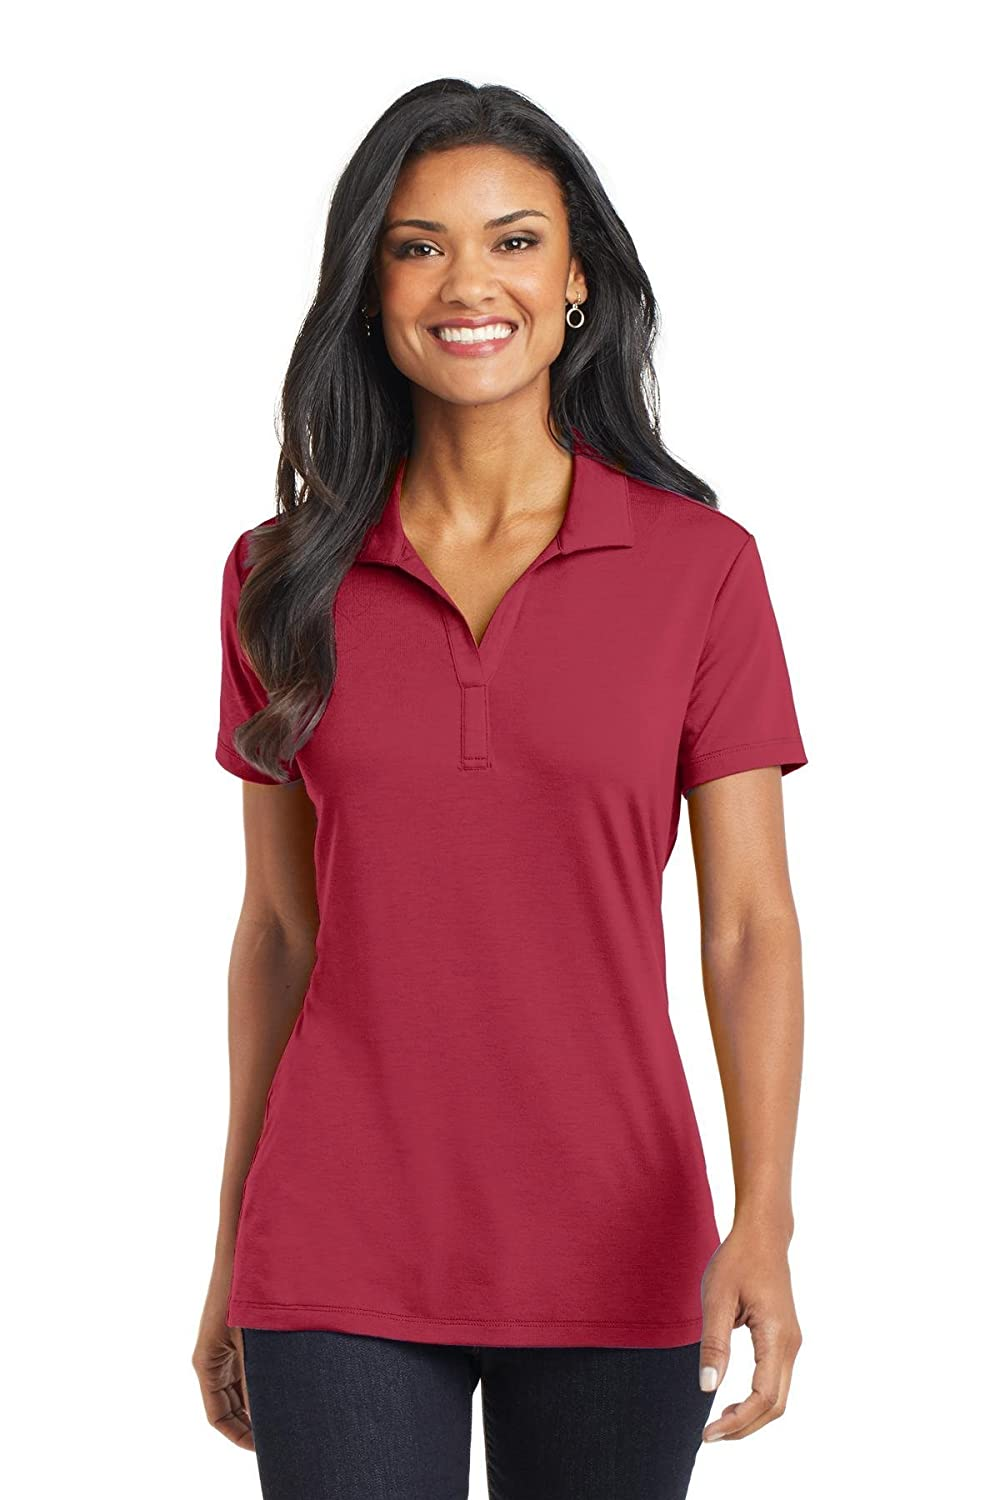 Port Authority L568 Women's Cotton Touch Performance Polo